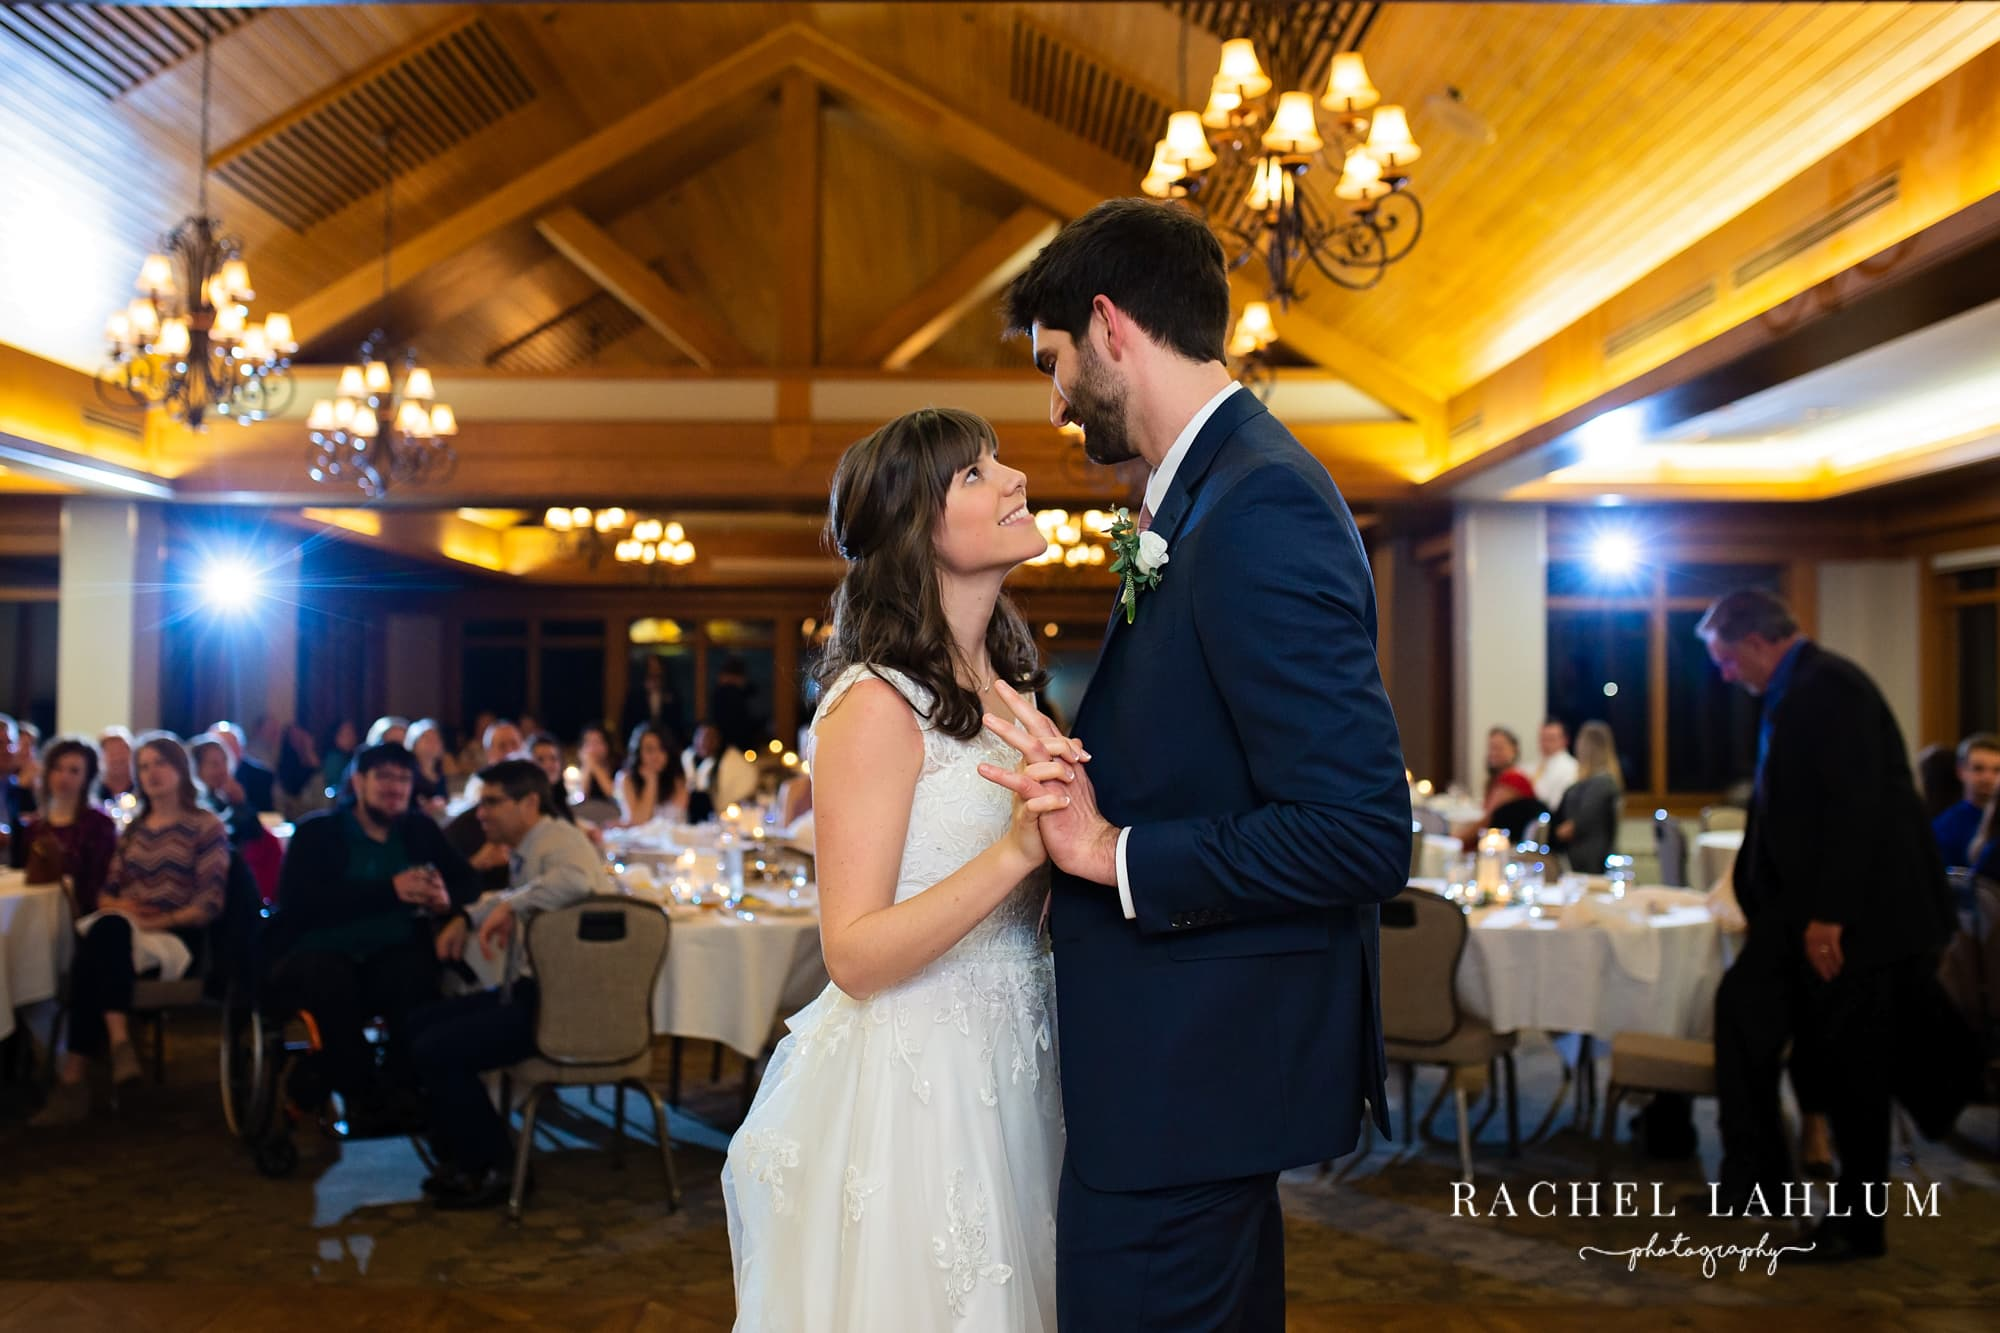 Bride and groom's first dance portrait at Mendakota Country Club in St. Paul, Minnesota.